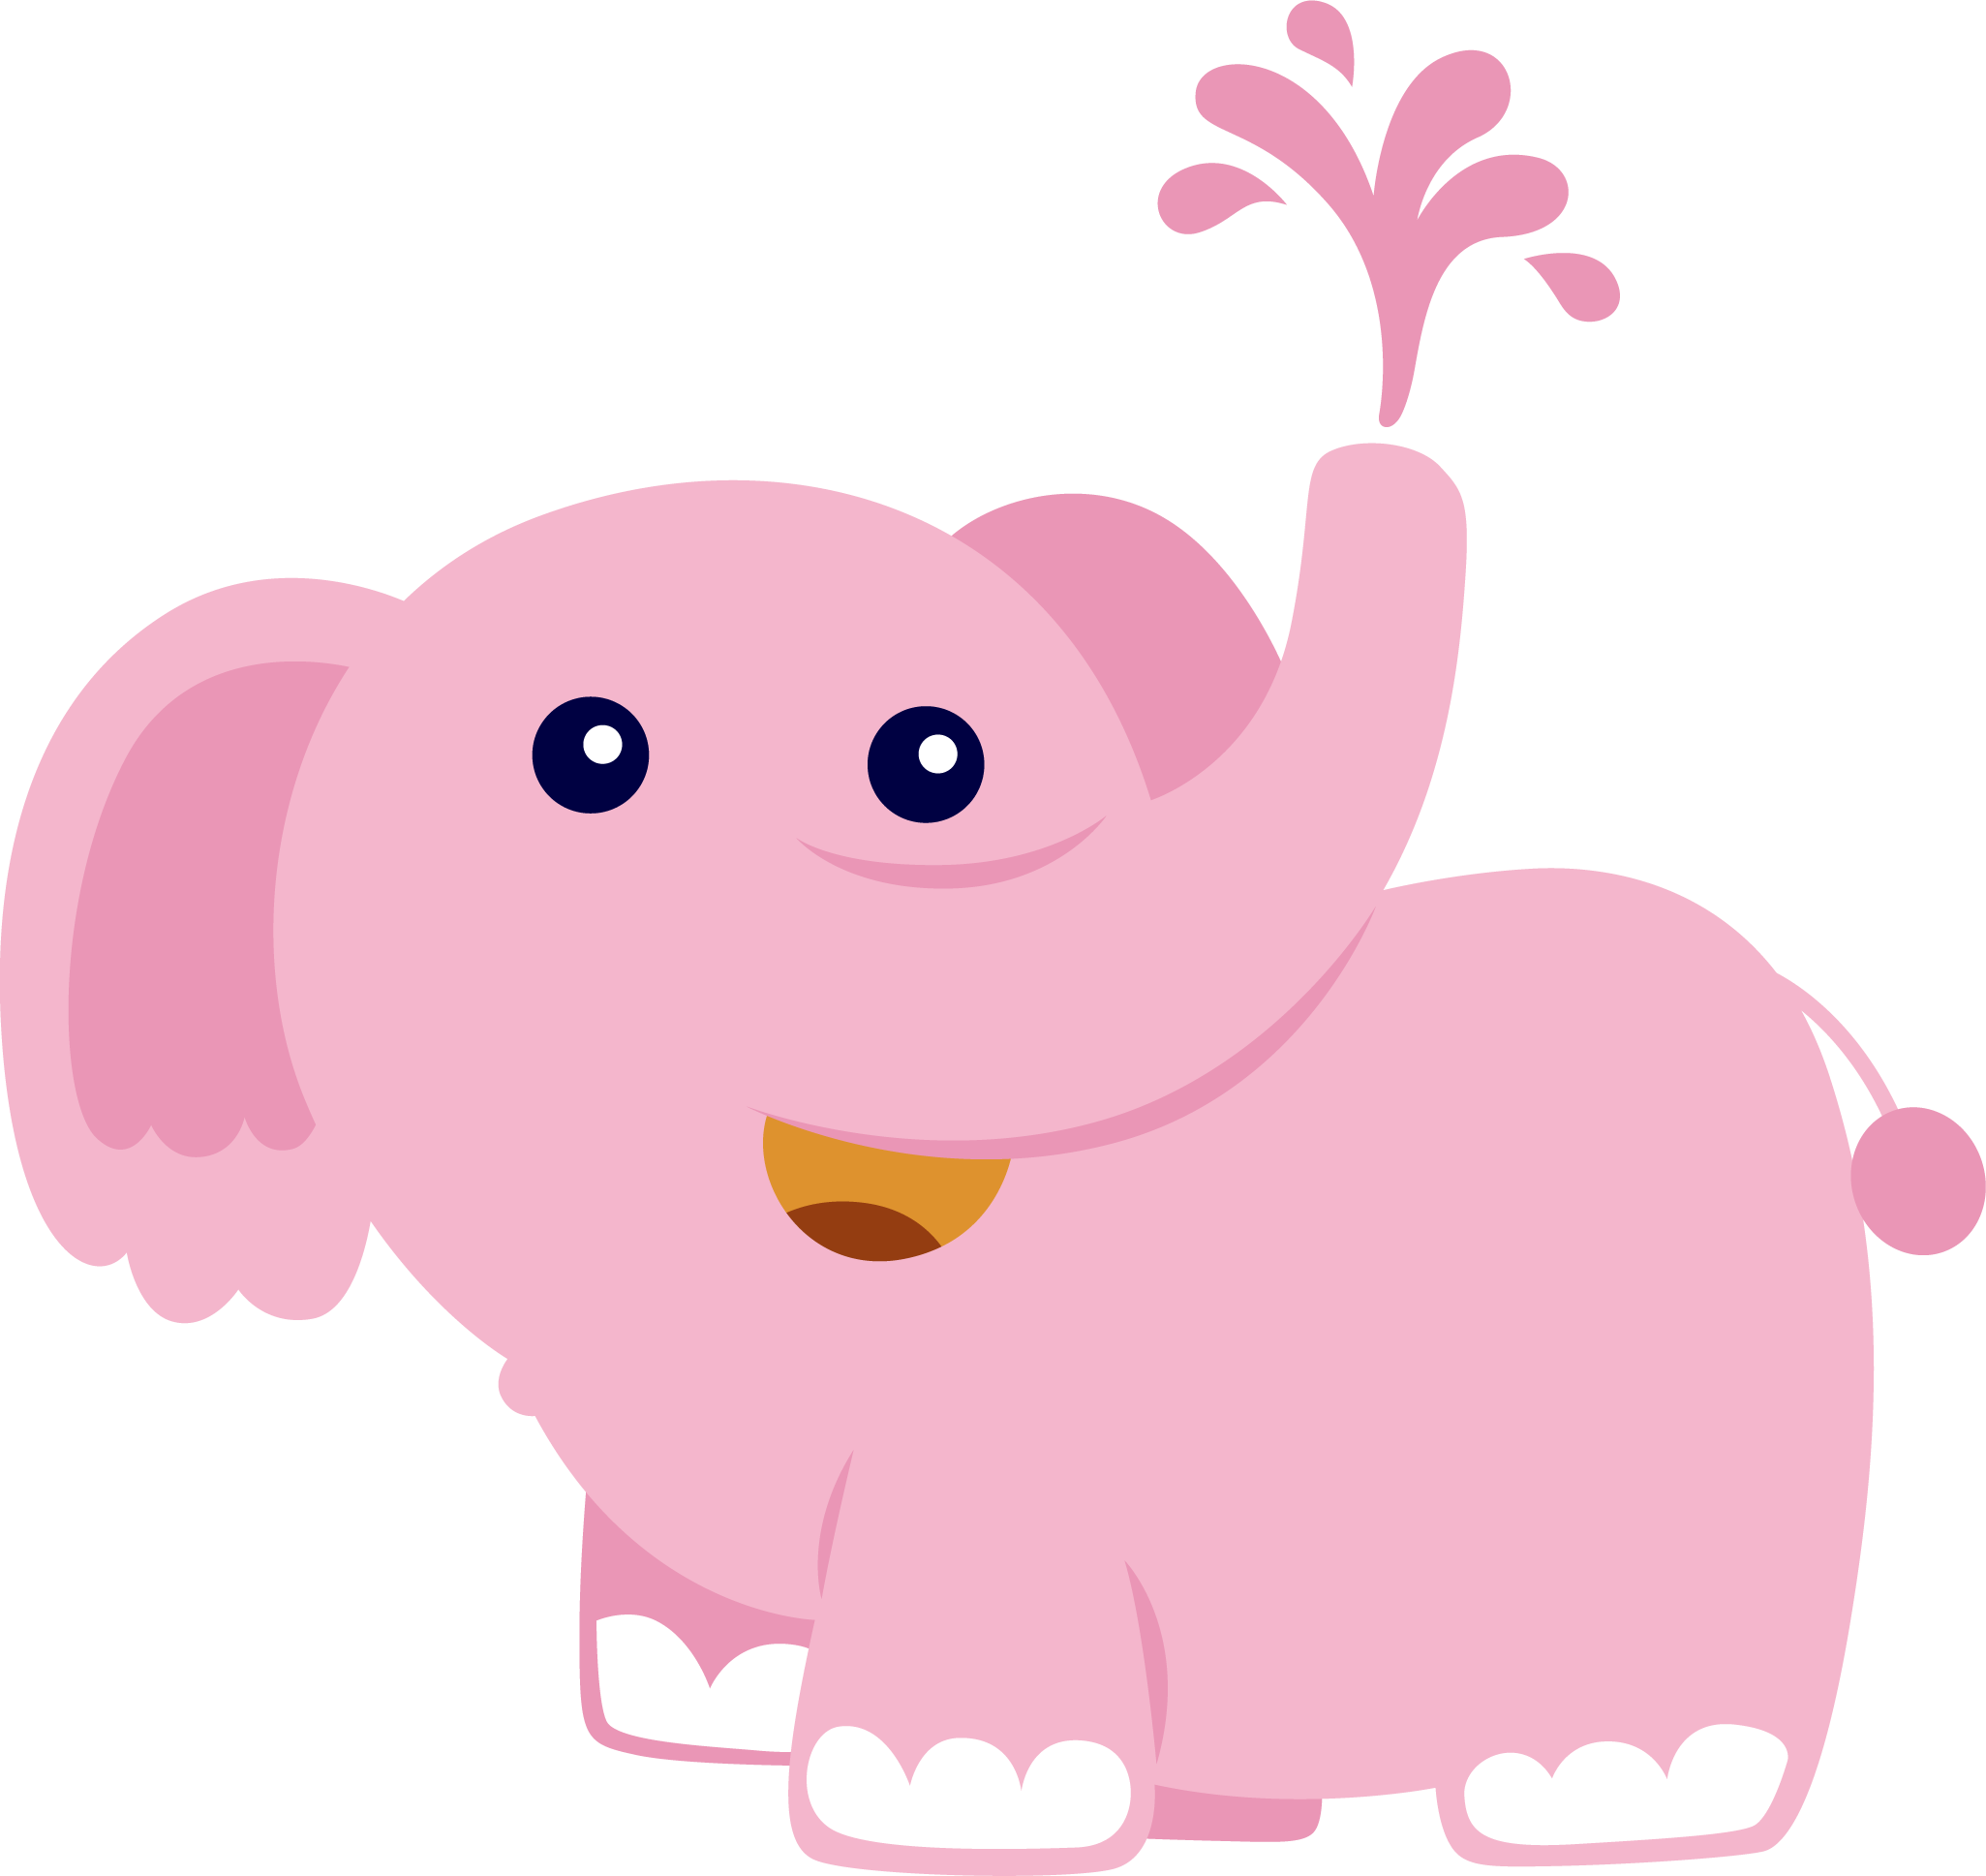 Elephant and piggie trunk image free stock pumpkin png files, Free.